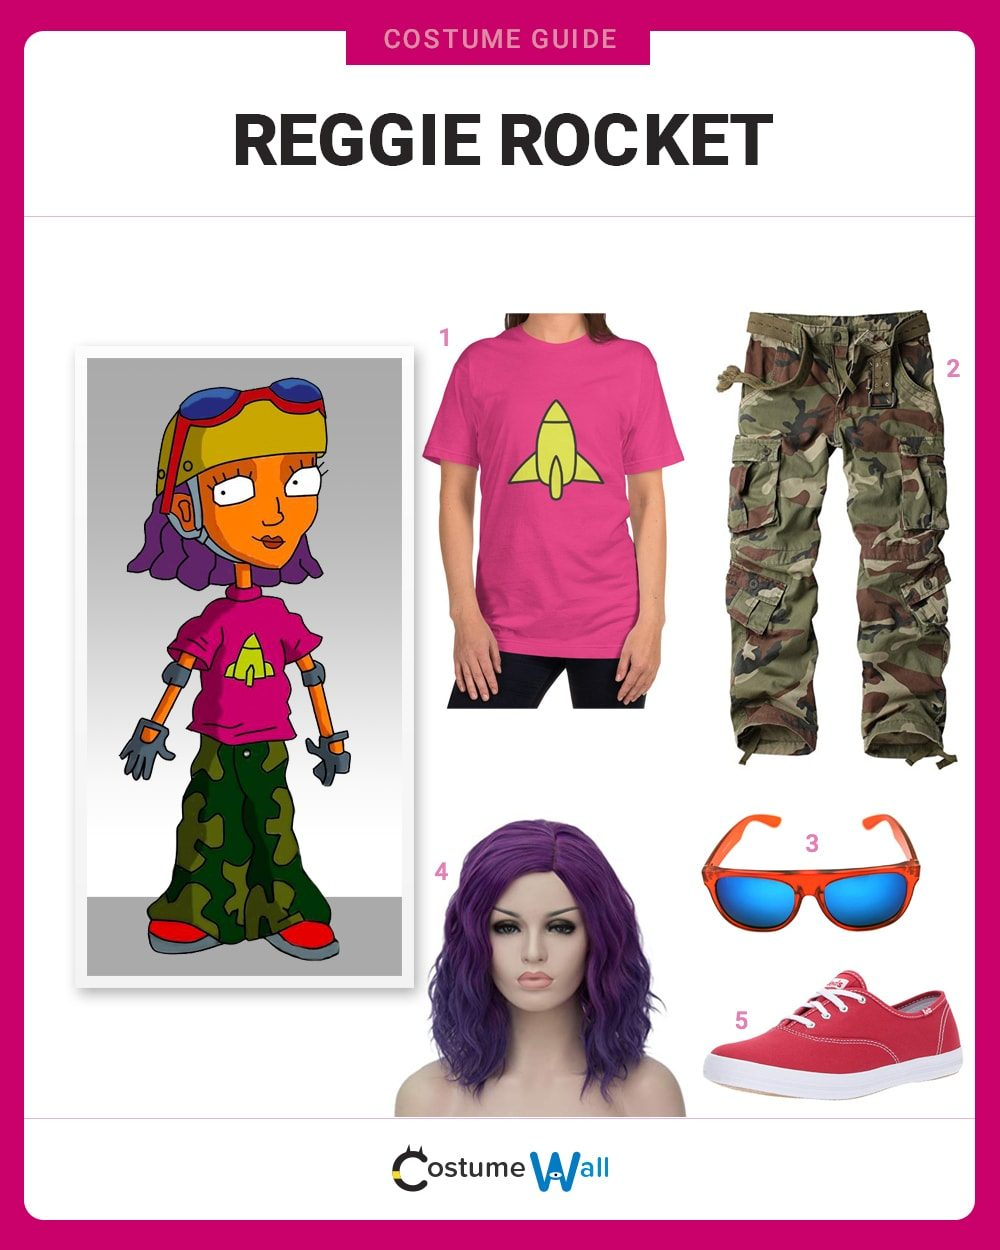 Reggie Rocket Costume Guide